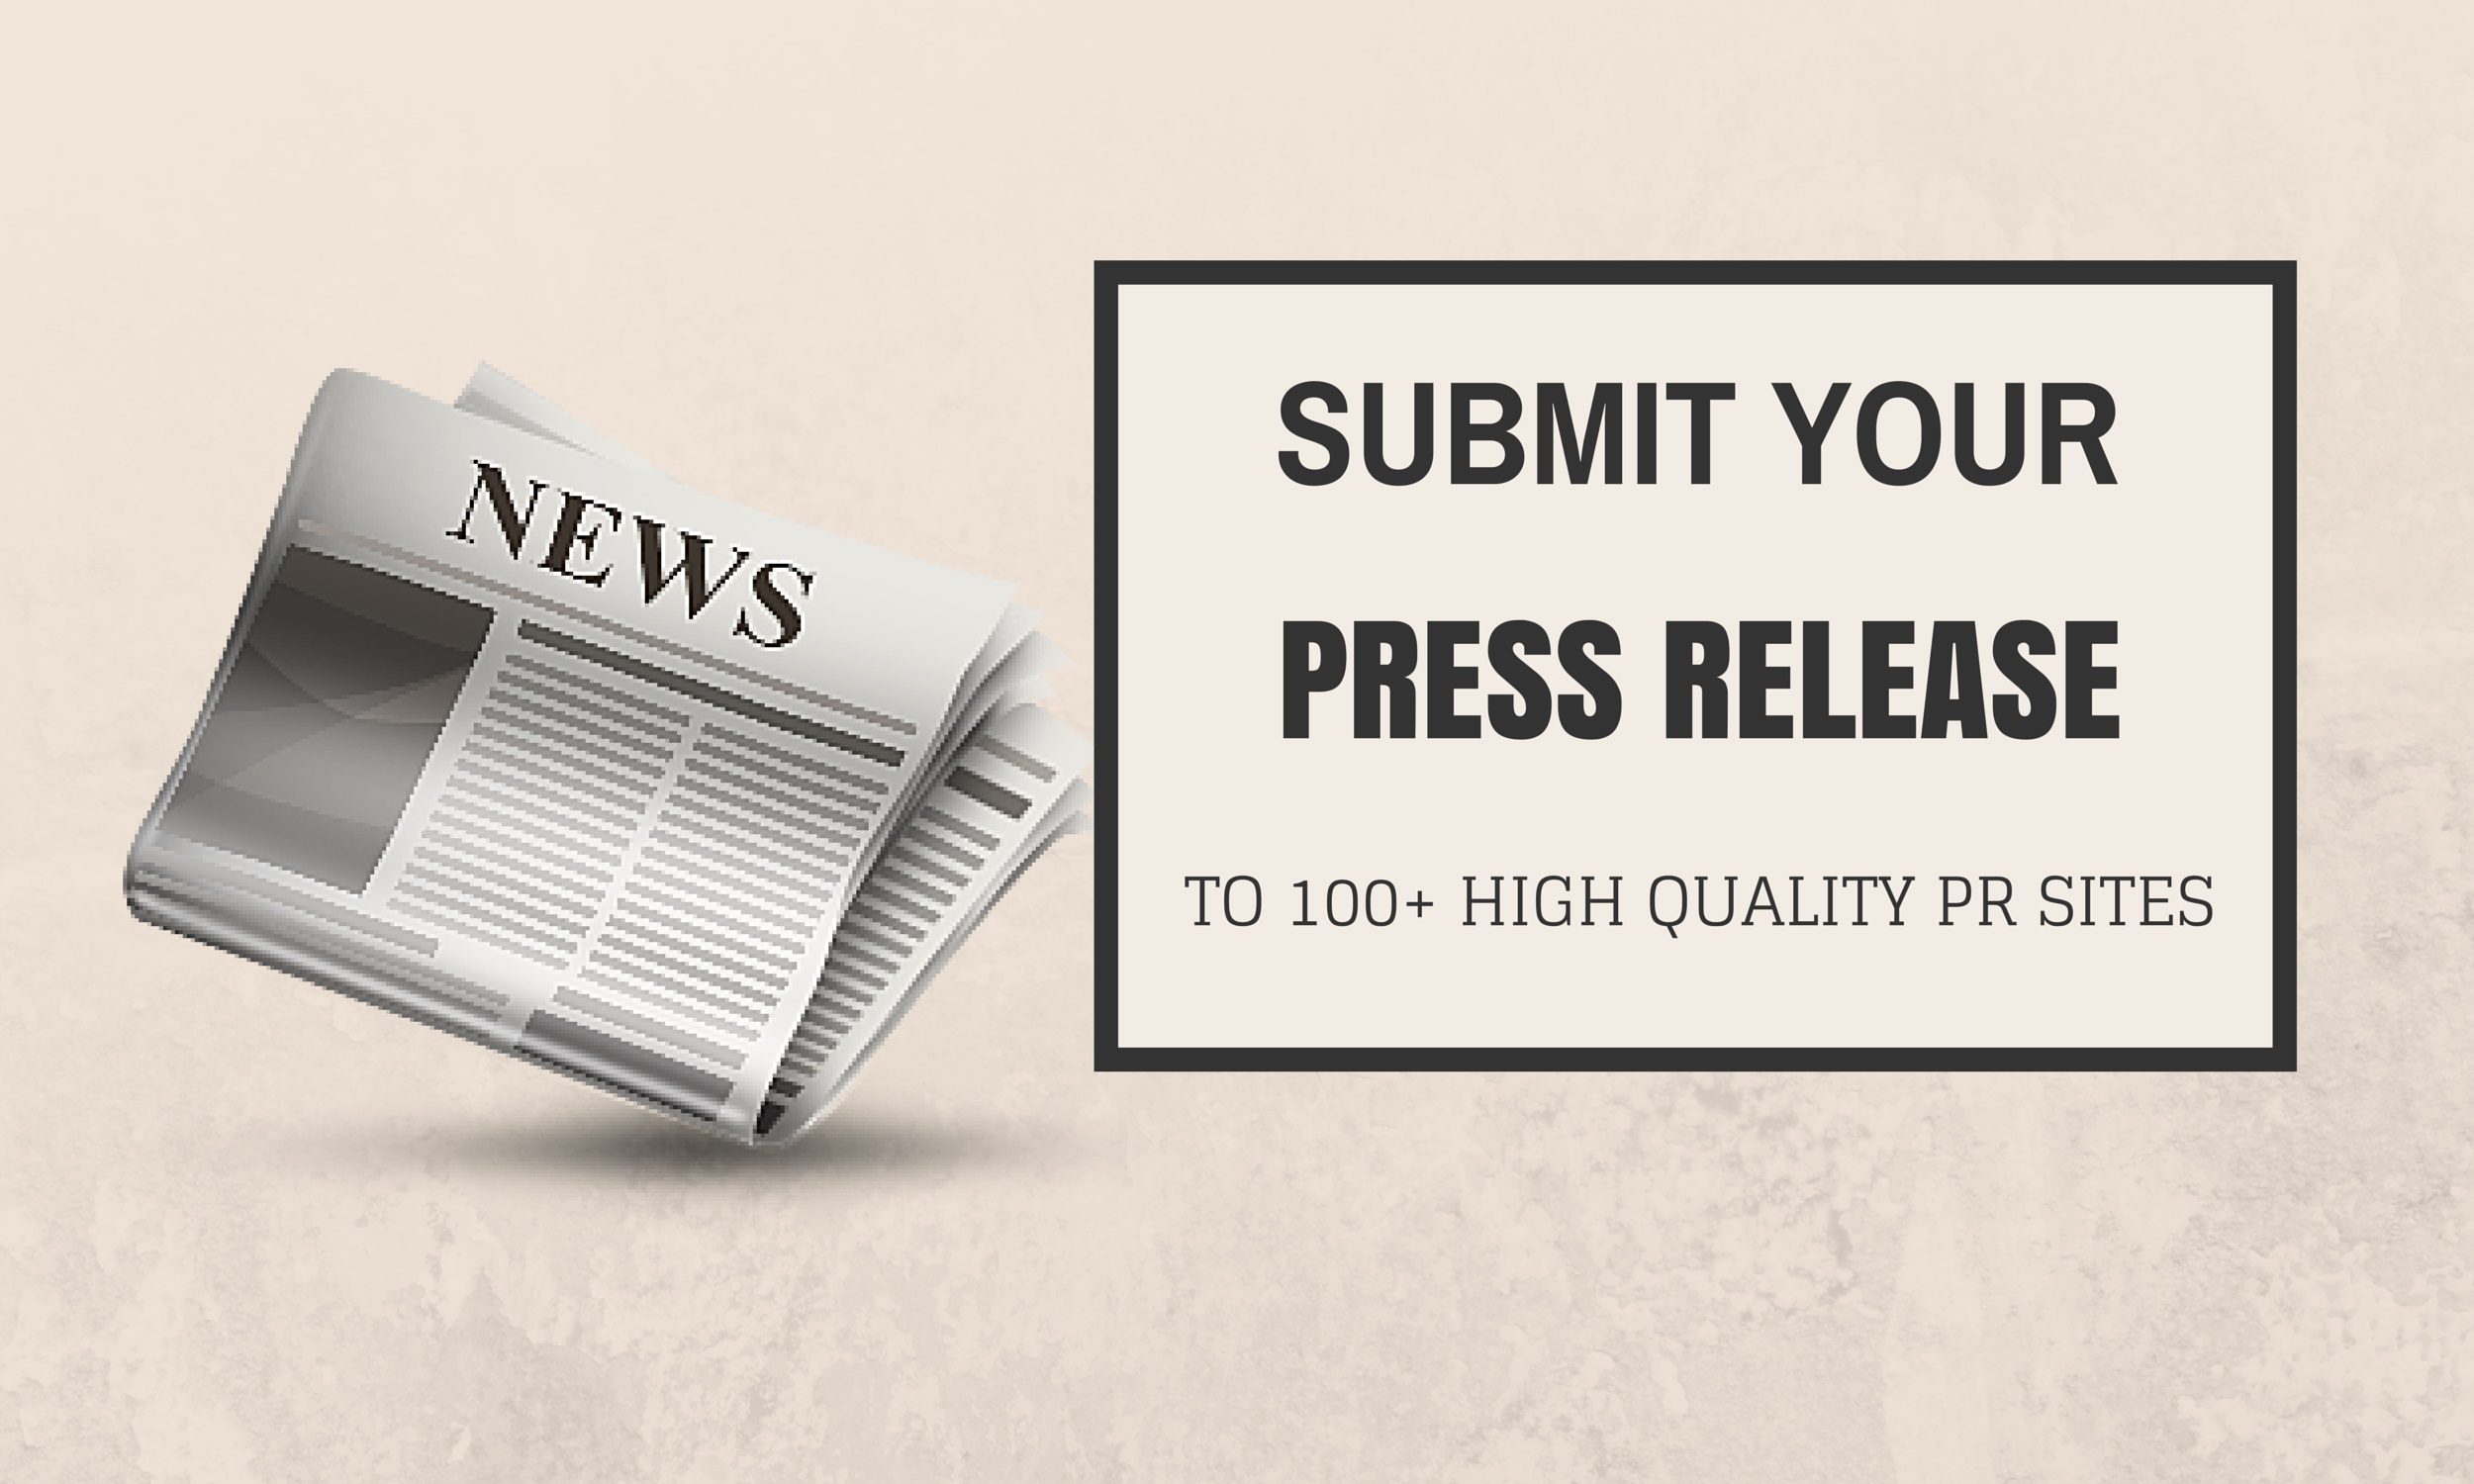 I will submit your Press Release to 100+ Quality PR Sites